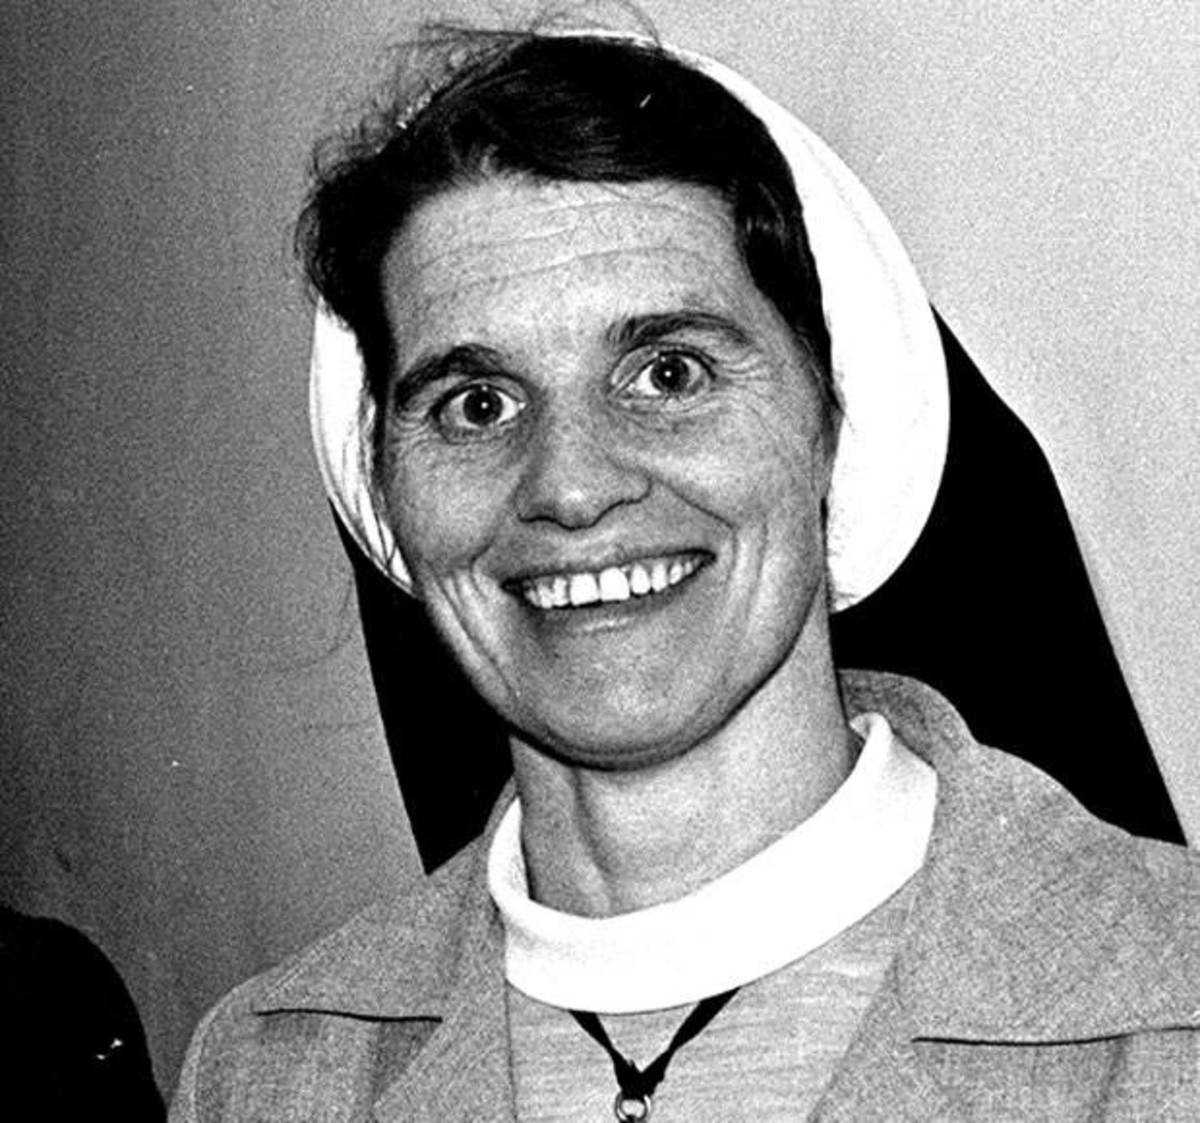 Born in 1939, Sister Stanislaus Kennedy is the recipient of many awards from 1981 to 2015 for her work aiding the disadvantaged of society.